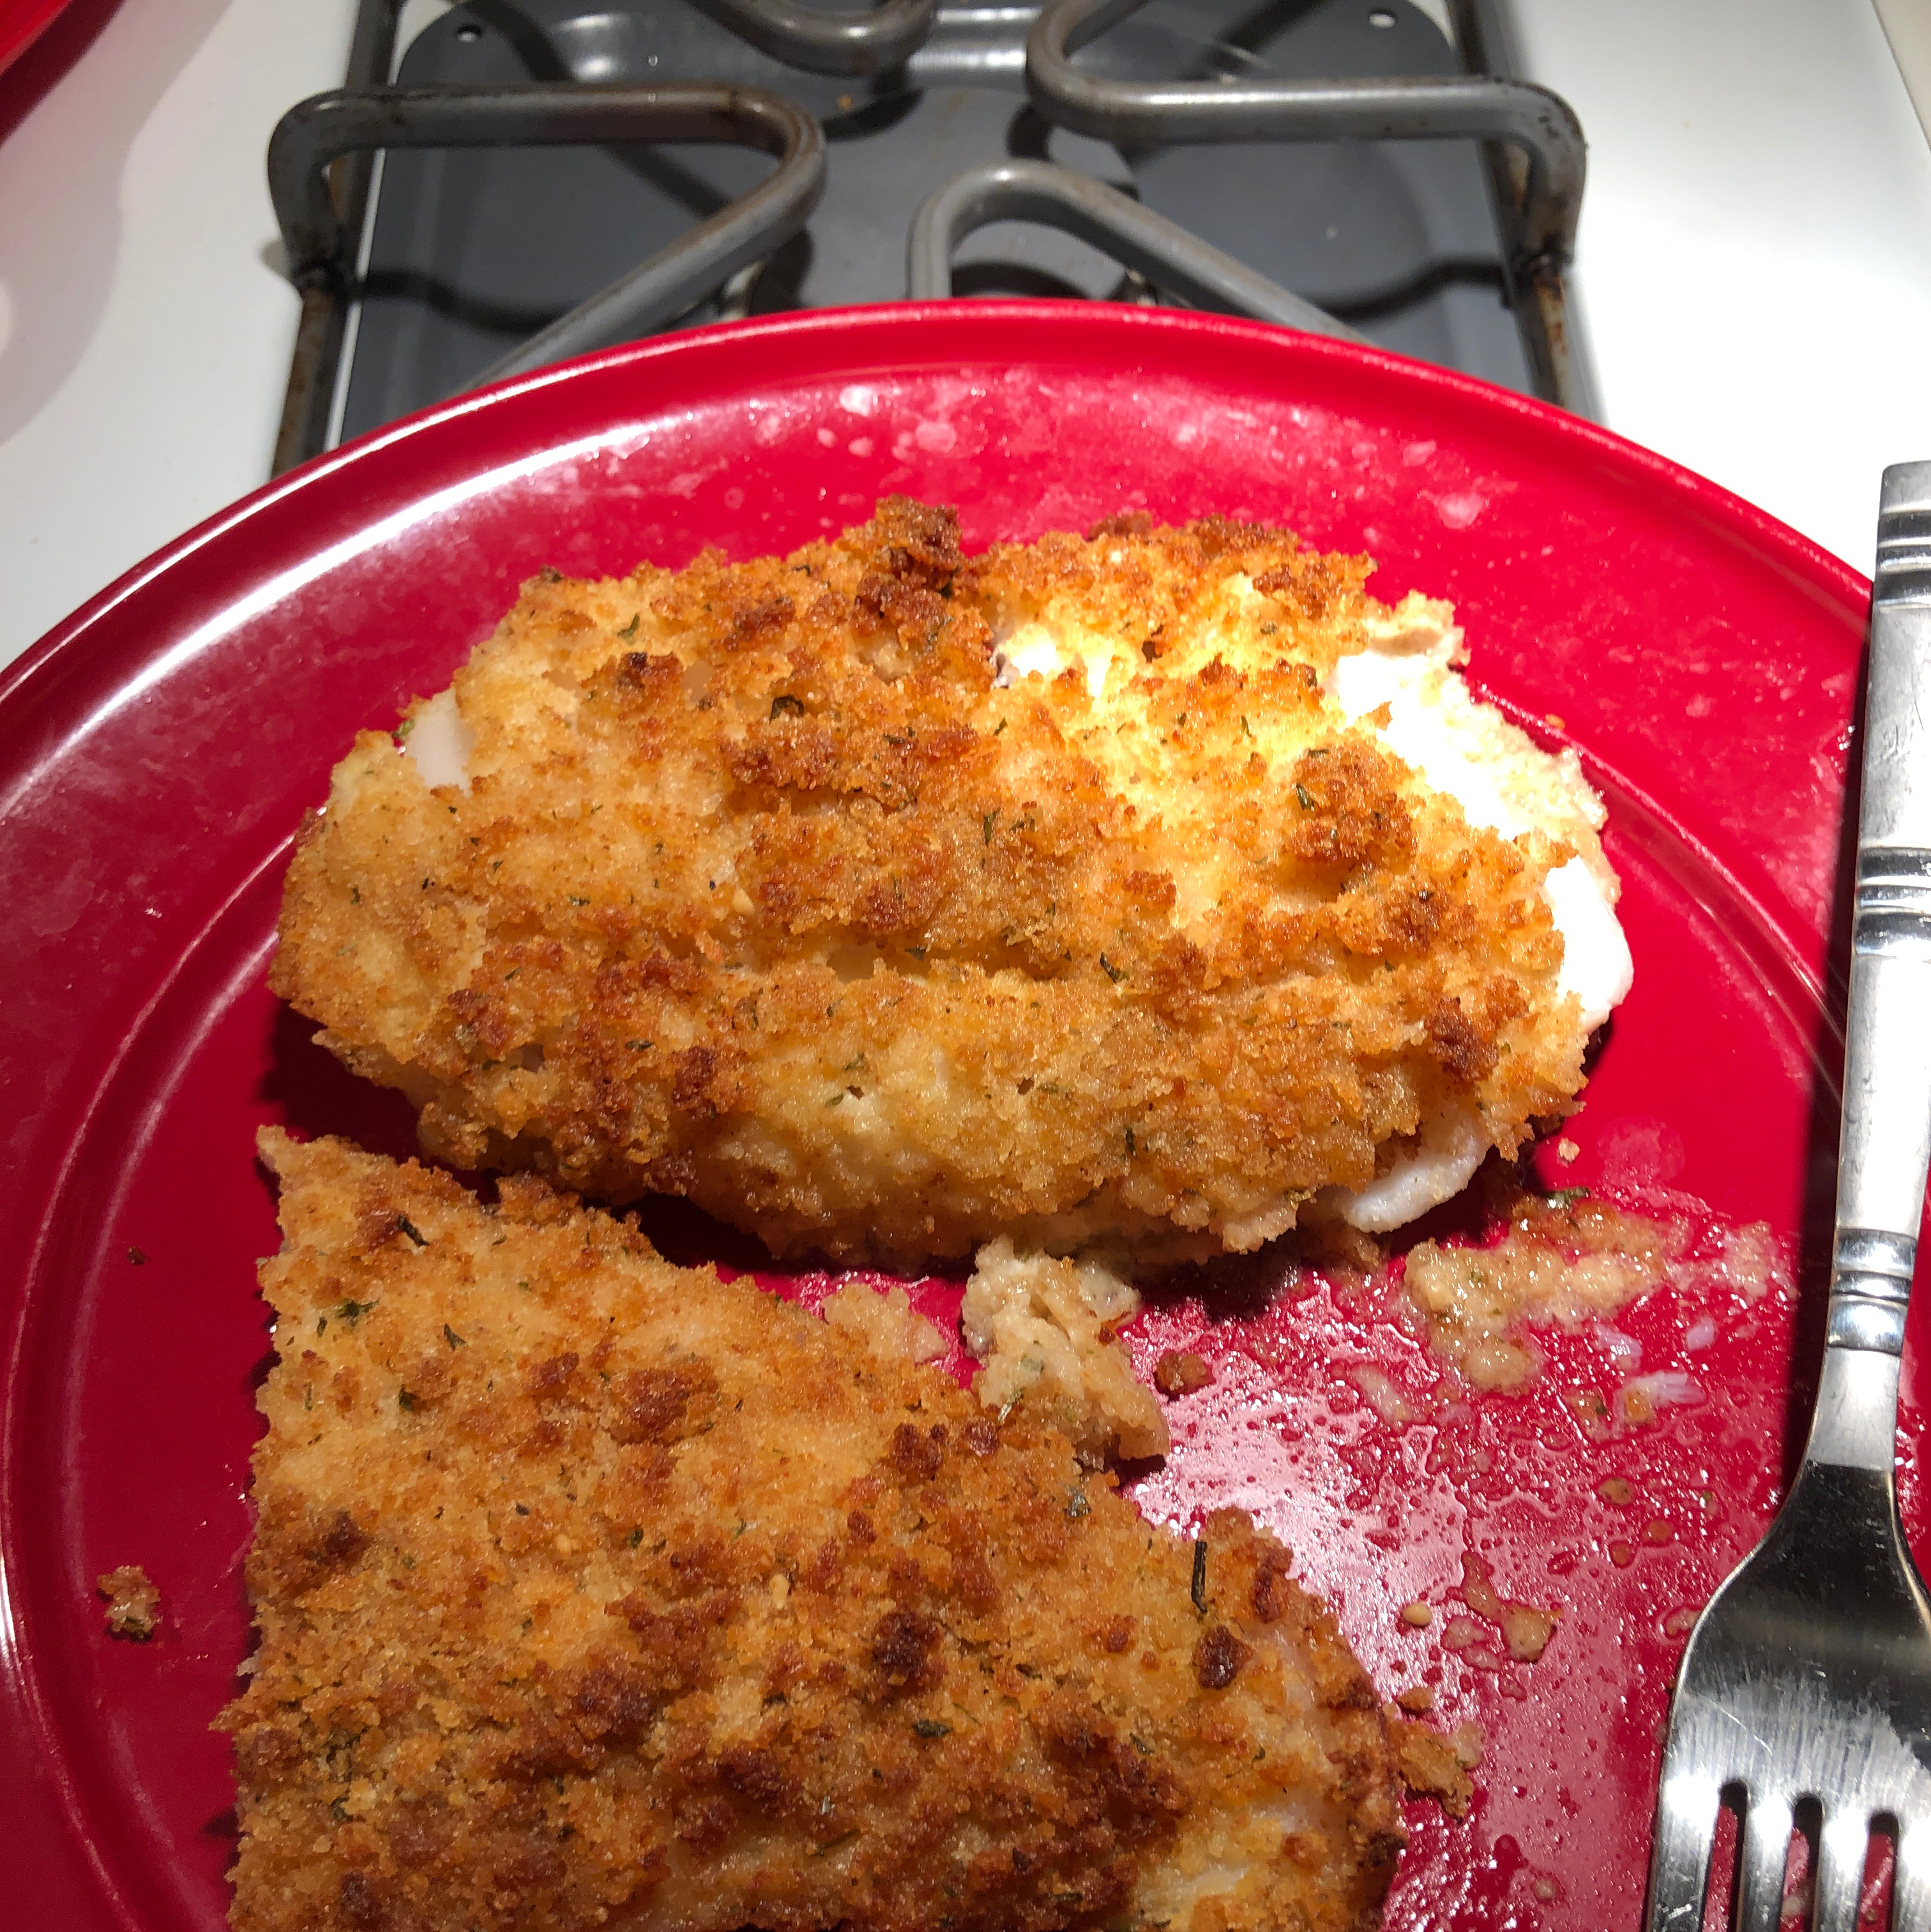 Air-Fried Crumbed Fish James Rosell